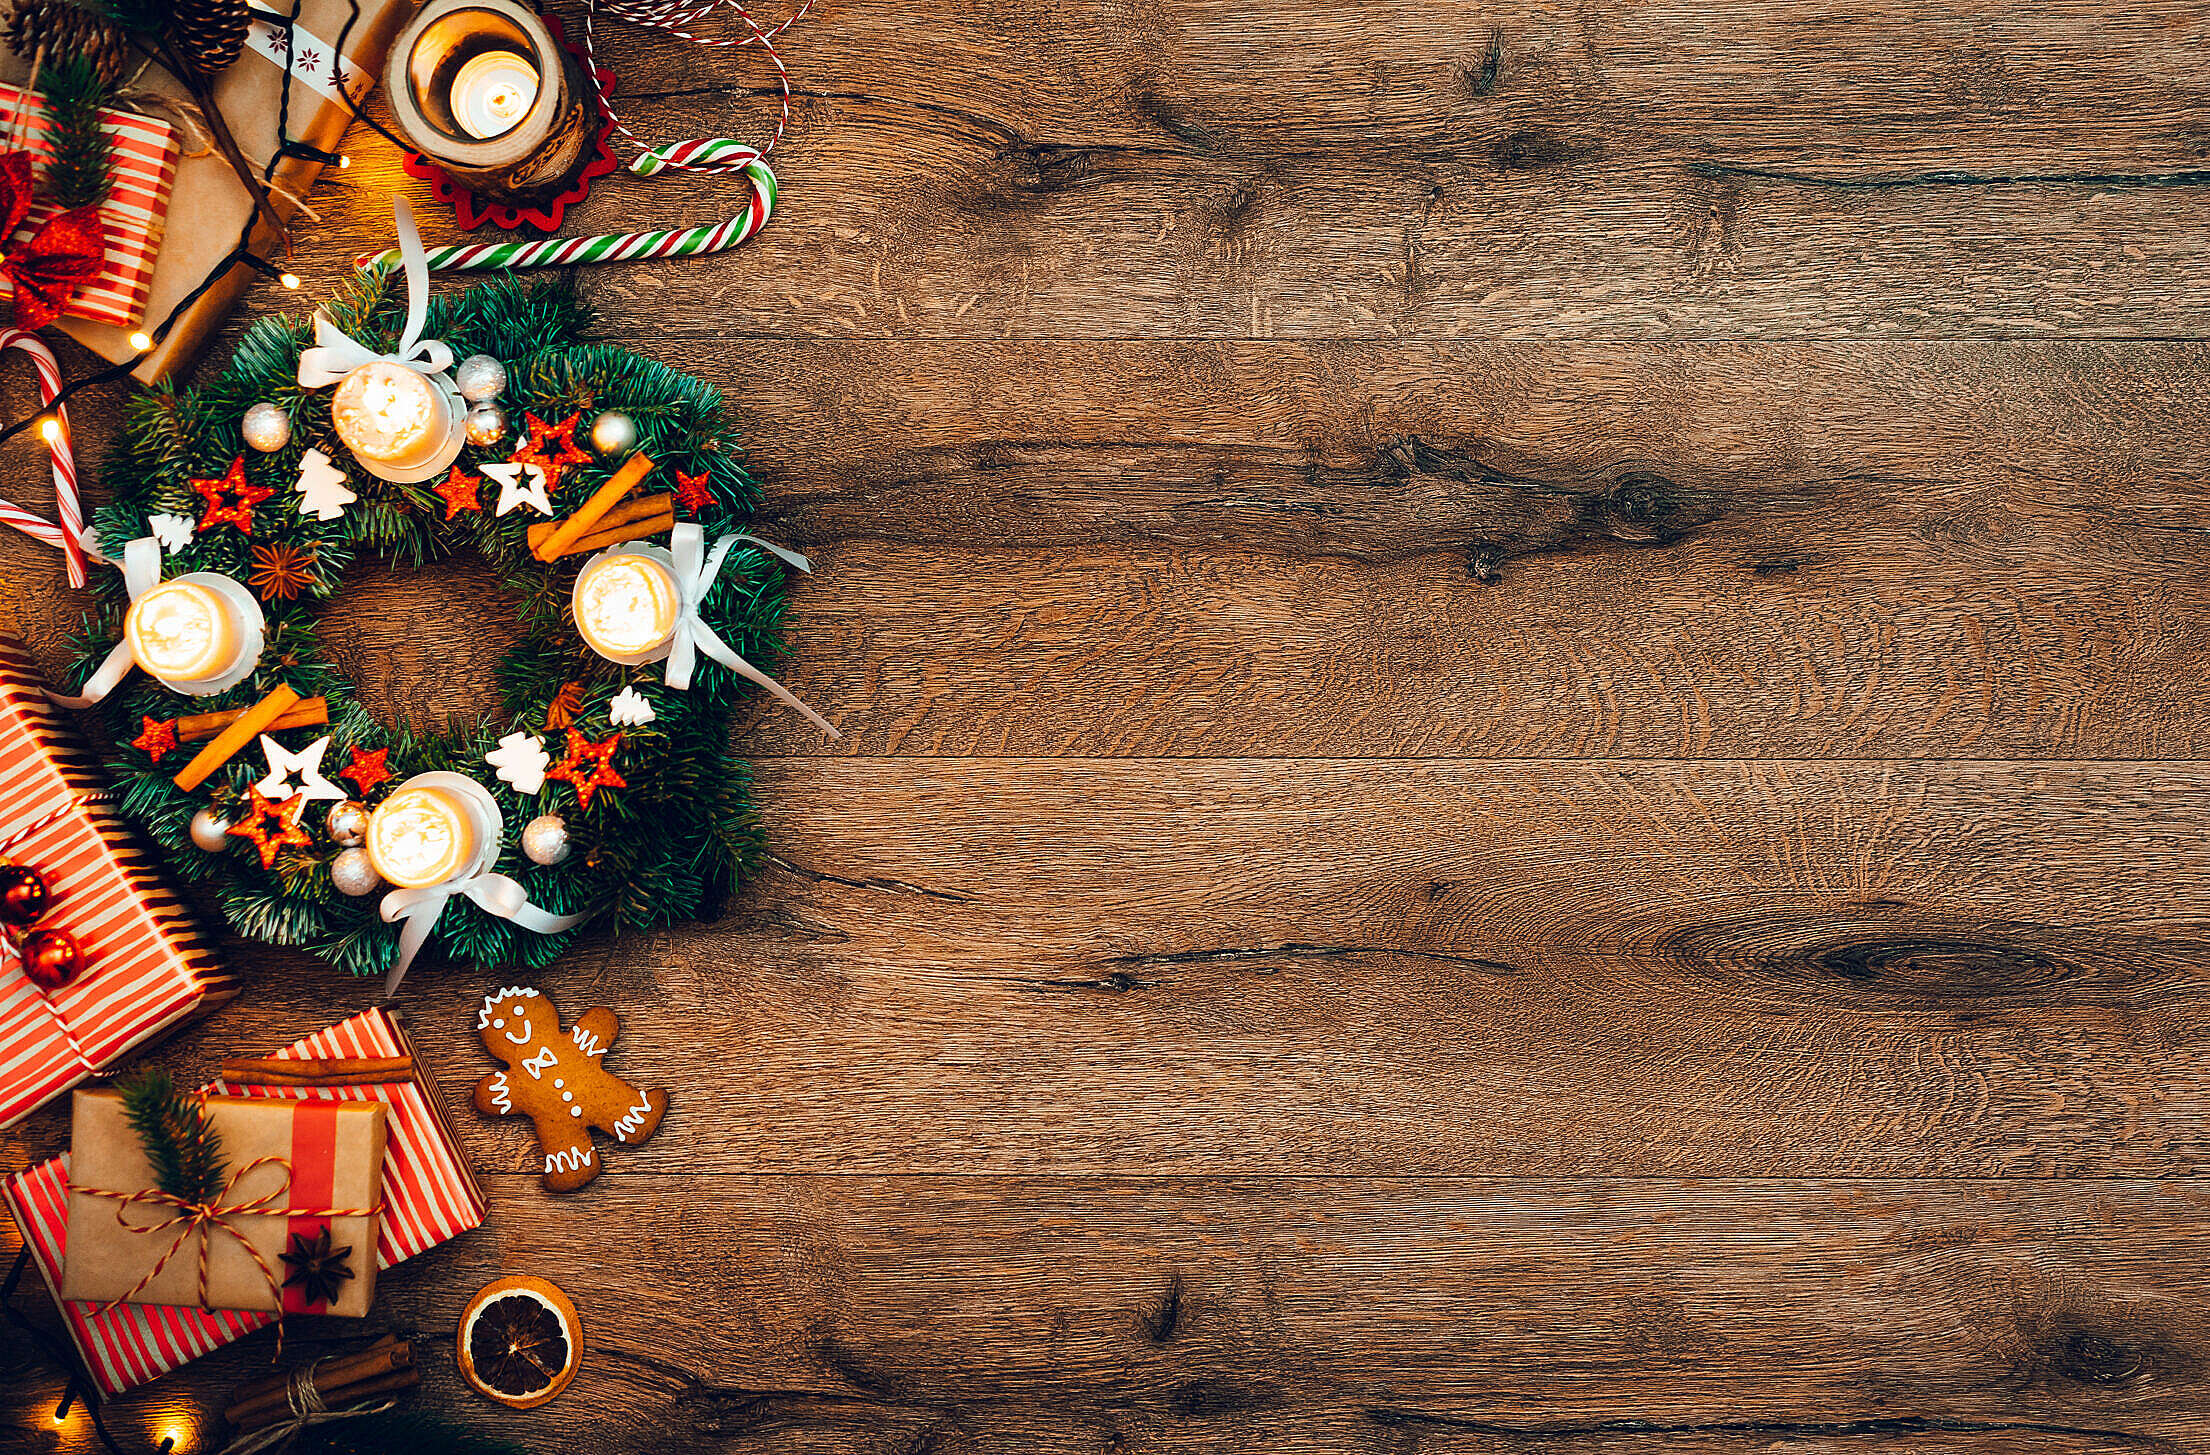 Advent Wreath with Gifts, Christmas Background Free Stock Photo